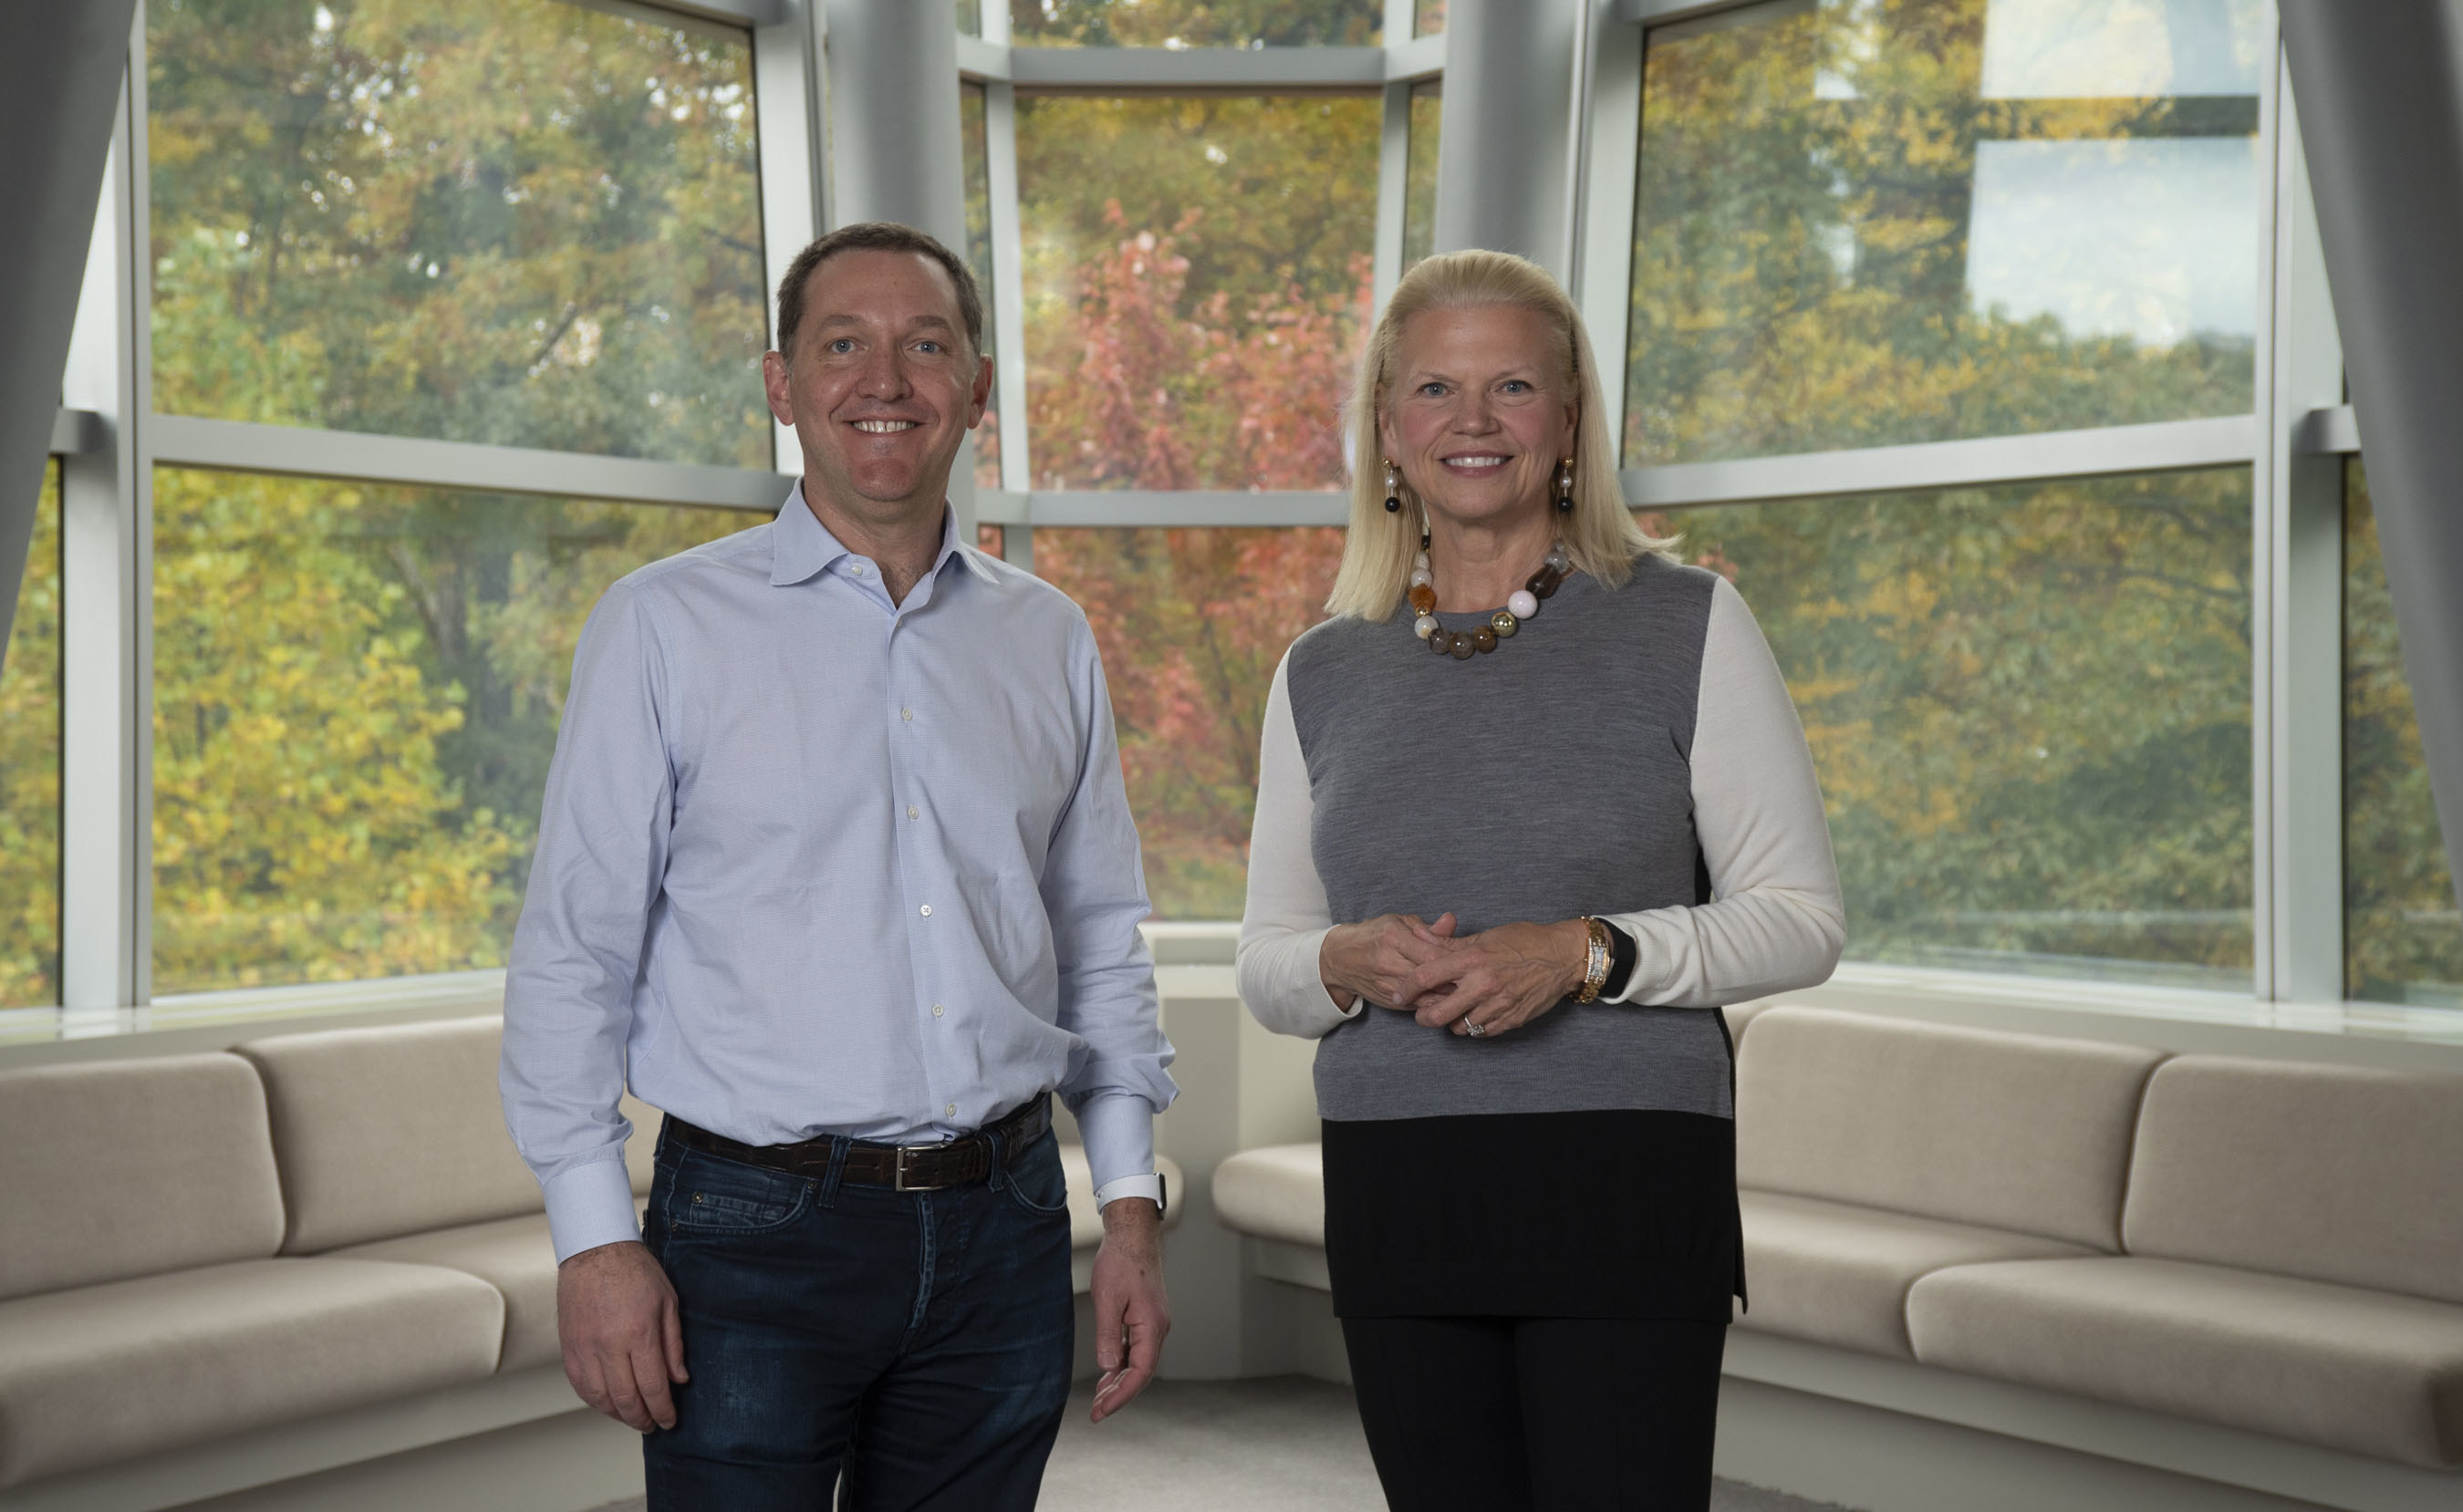 James Whitehurst, CEO Red Hatu, a Ginni Rometty, předsedkyně, prezidentka a CEO IBM